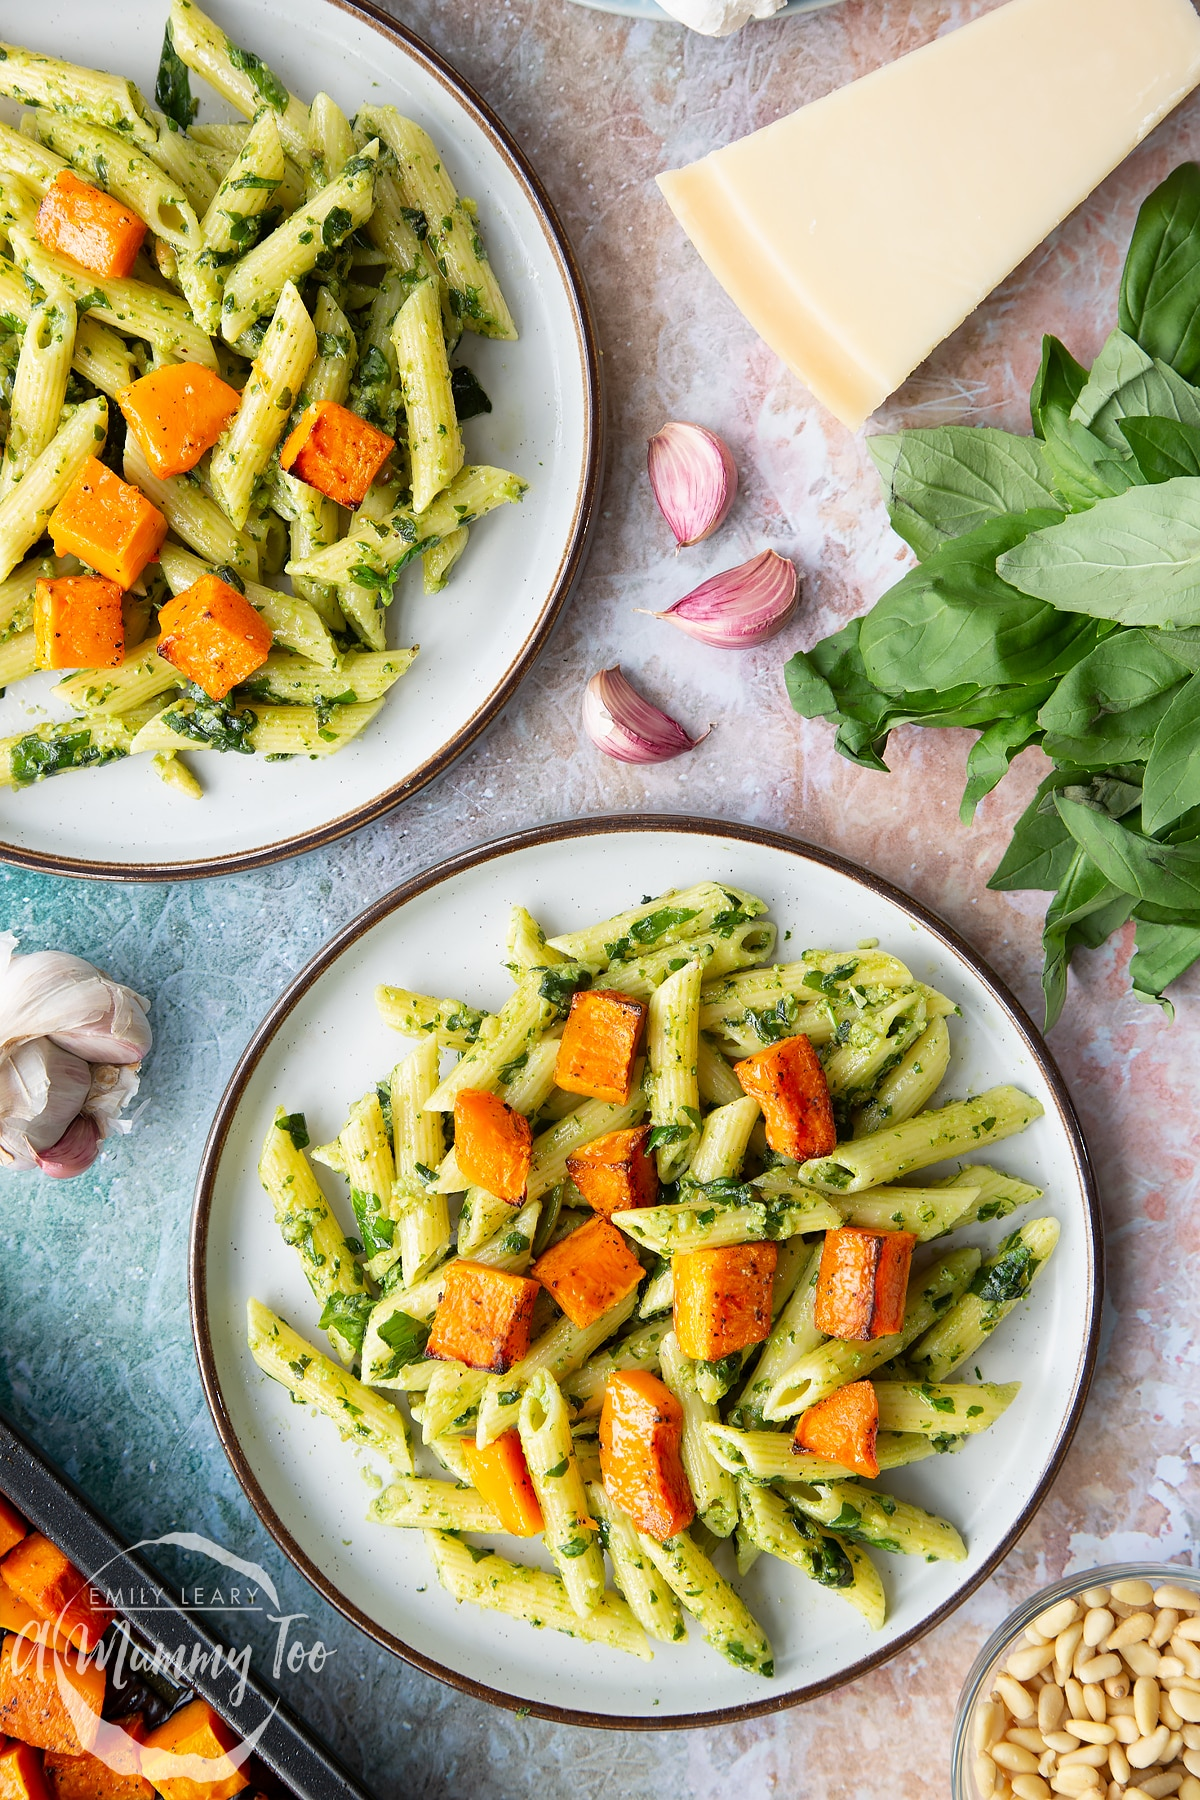 Penne pasta tossed with fresh pesto, served to plates and topped with roasted butternut squash. Ingredients to make penne with butternut squash and goat cheese surround the plates.